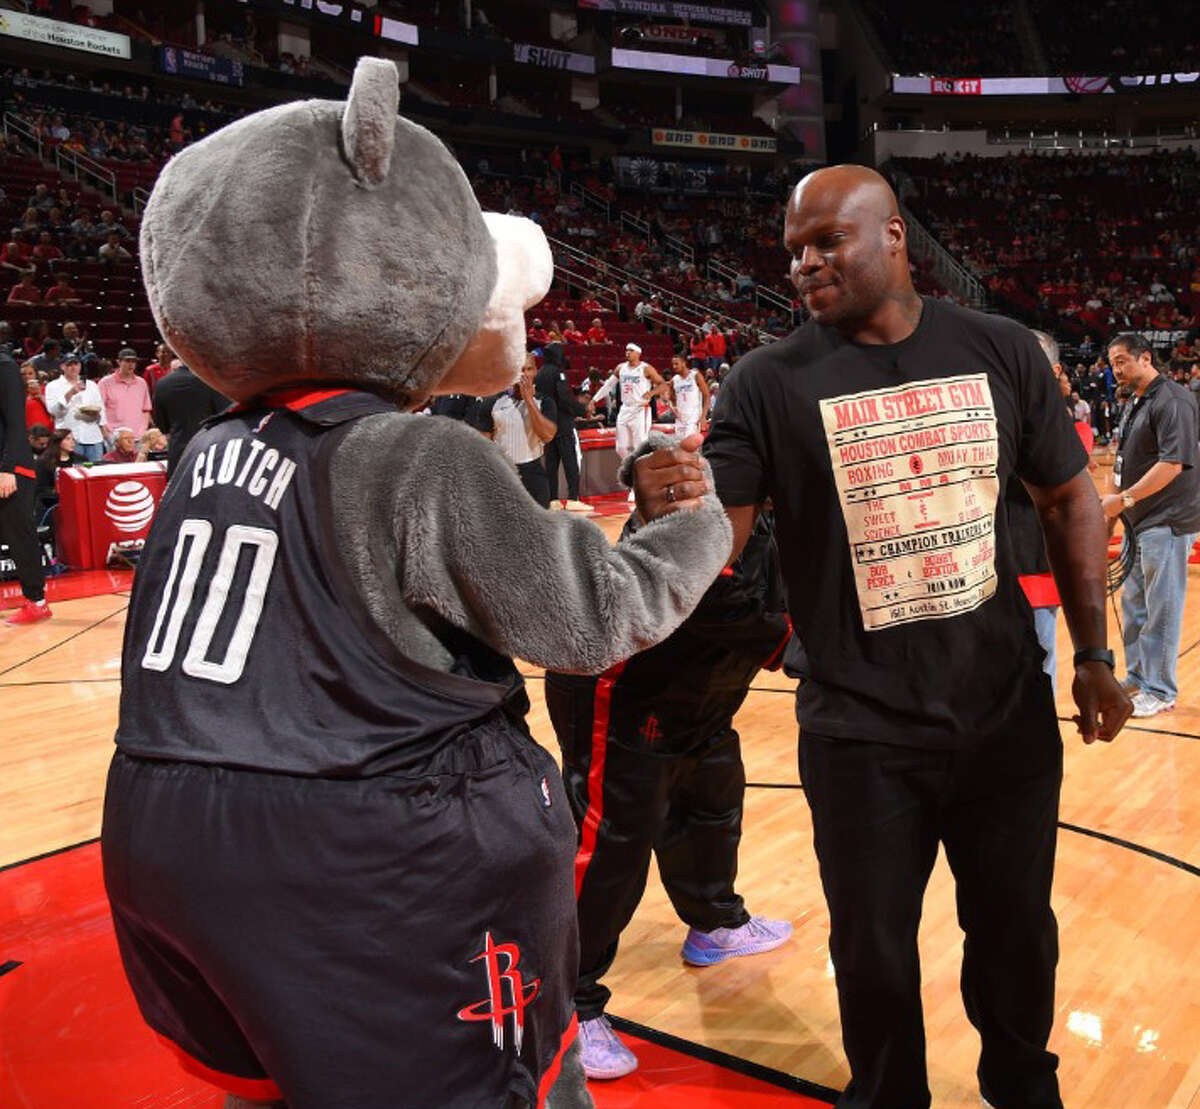 Oct. 26, 2018 Derrick Lewis, UFC fighter Made it Rockets lost to the Clippers, 133-113